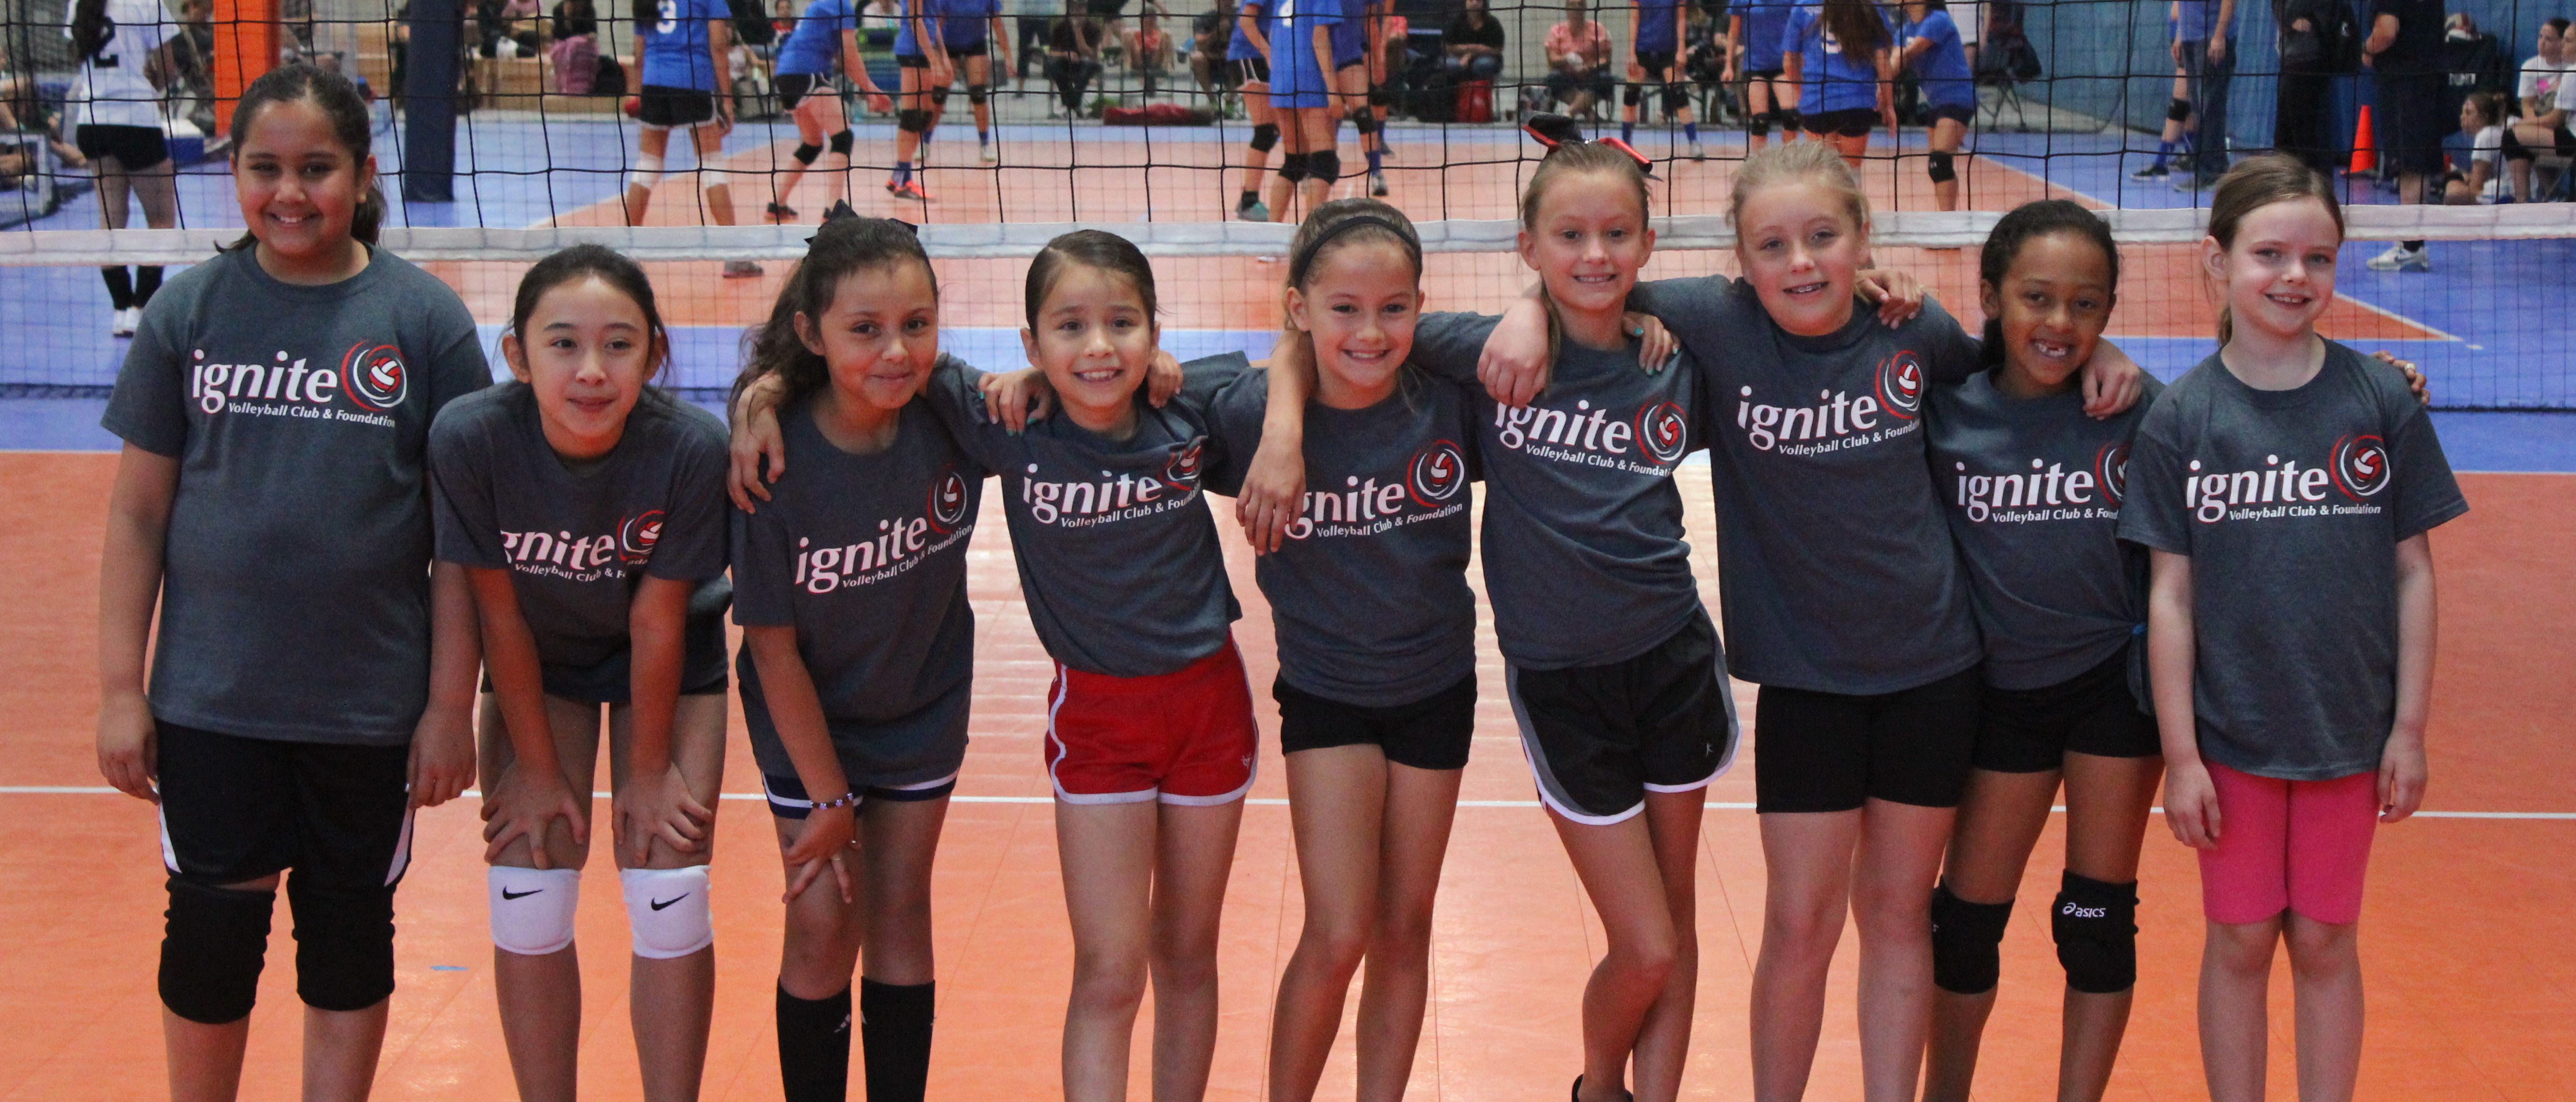 Spring 2 Volleyball Classes Start April 27 Ignite Volleyball Club Foundation Volleyball Volleyball Clubs Spring